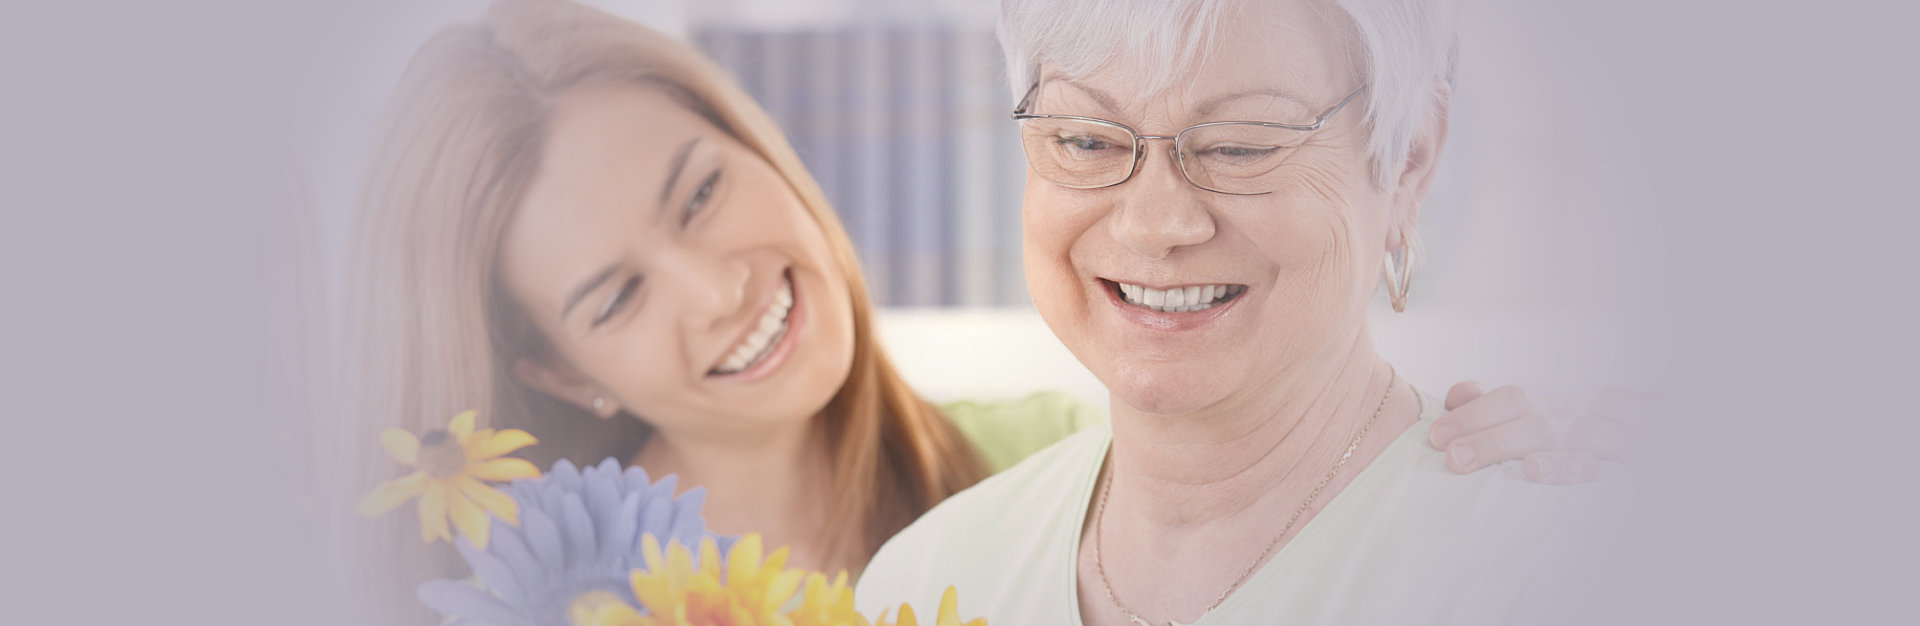 elderly woman and her daughter smiling together